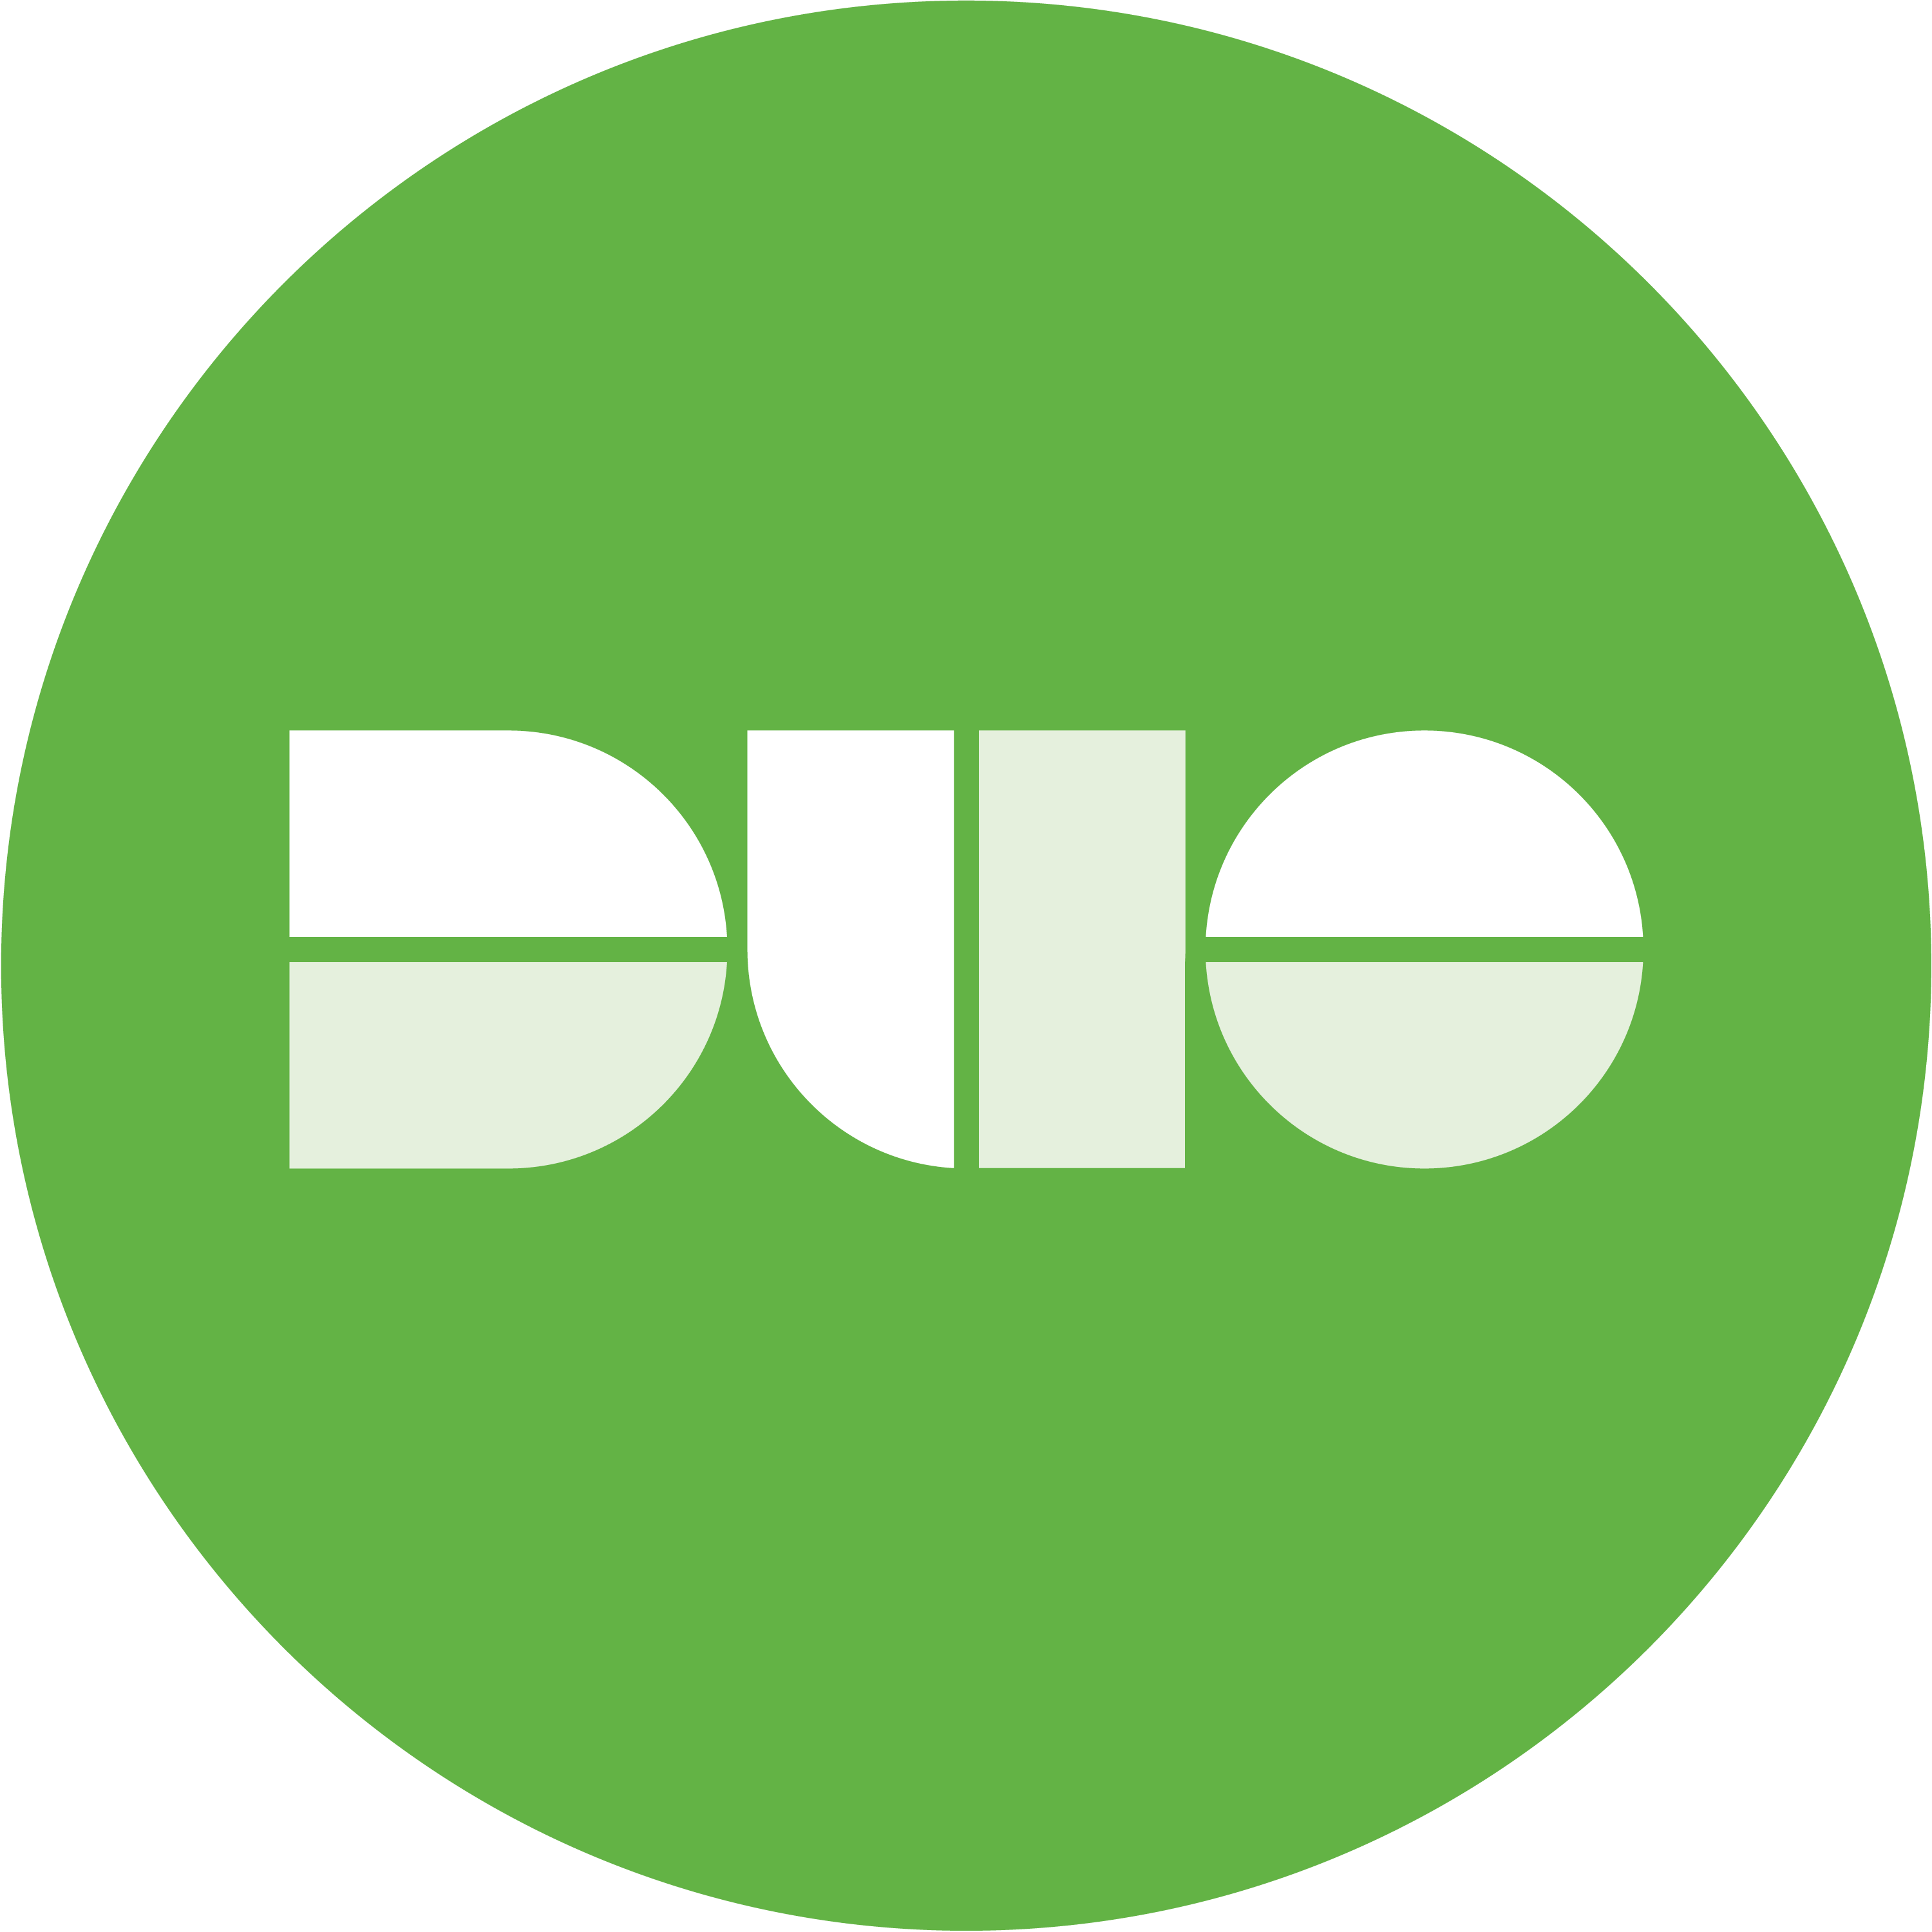 Keeping your systems safe with Duo multifactor authentication - Featured Image